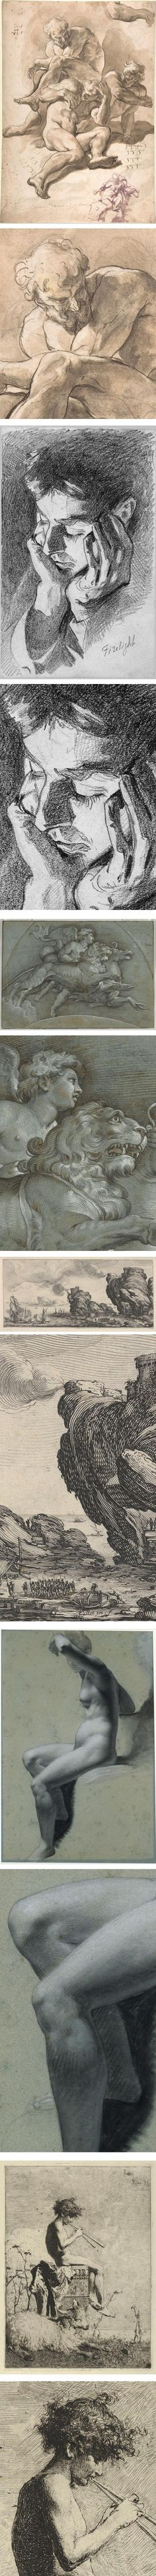 Drawings and Prints: Selections from the Permanent Collection, Metropolitan Museum of Art: Paolo Pagani, John Singer Sargent, Denijs Calvaert, Jacques Callot, Pierre Paul Prud'hon, Mariano Fortuny